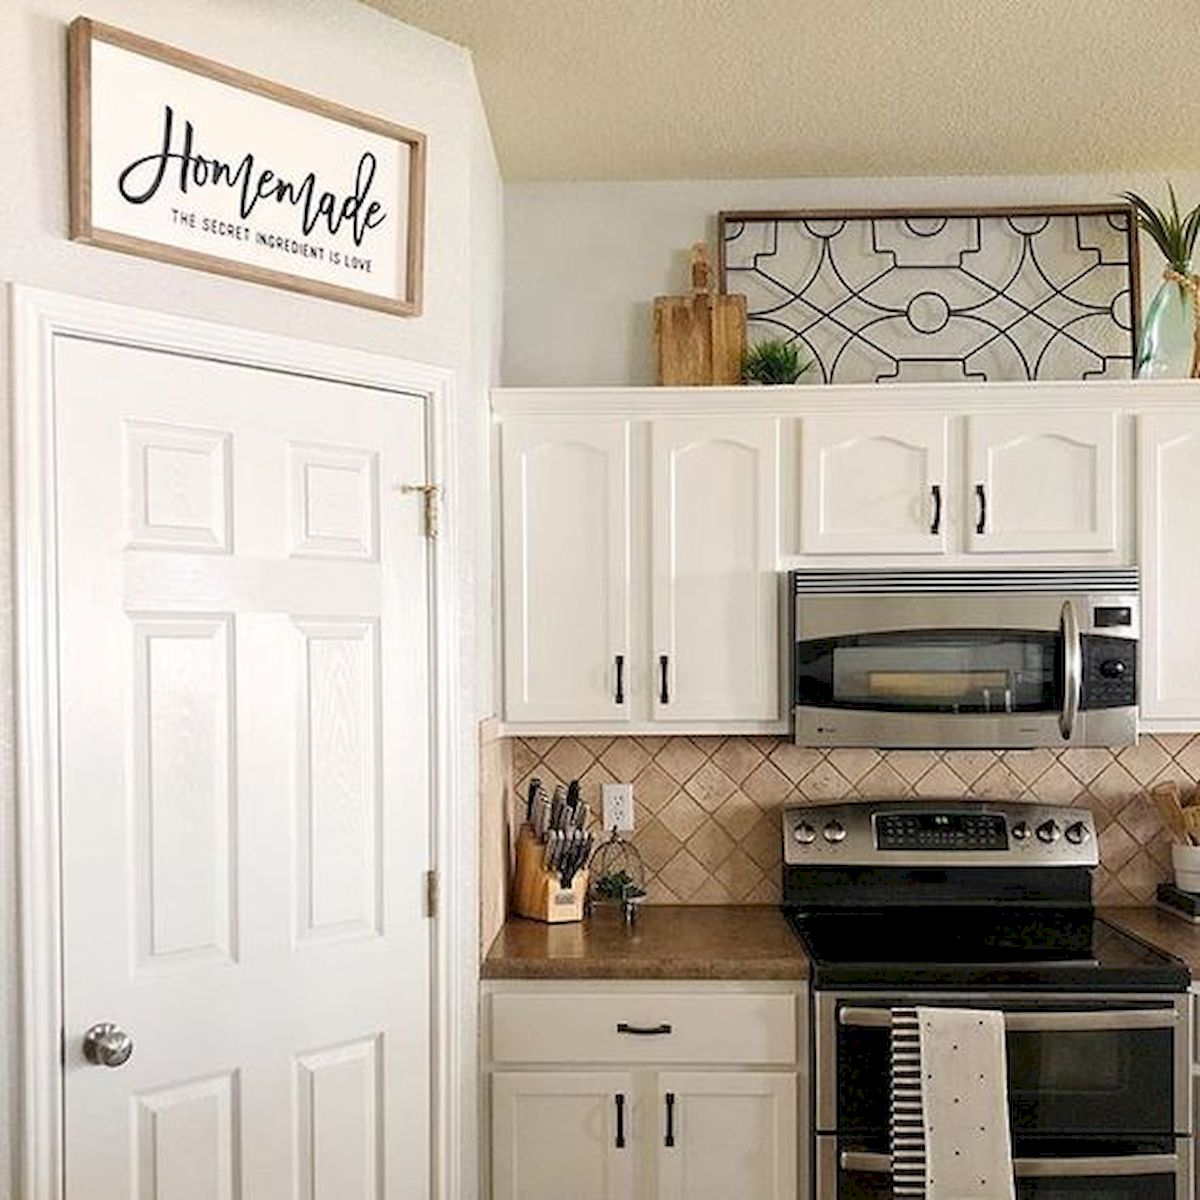 37 Farmhouse Wall Decor Ideas for Kitchen (13)